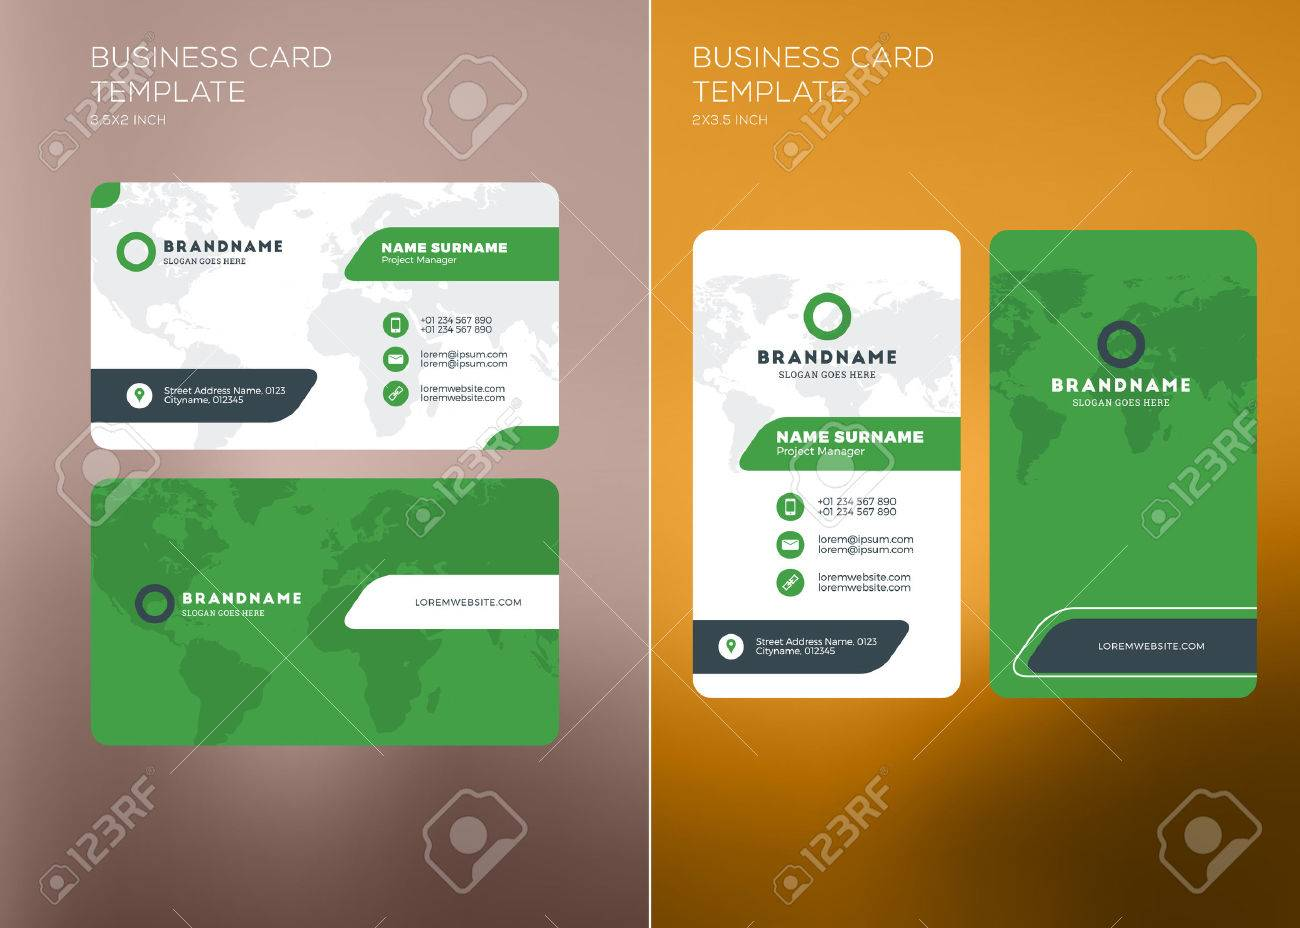 Corporate business card print template personal visiting card corporate business card print template personal visiting card with company logo vertical and horizontal cheaphphosting Gallery